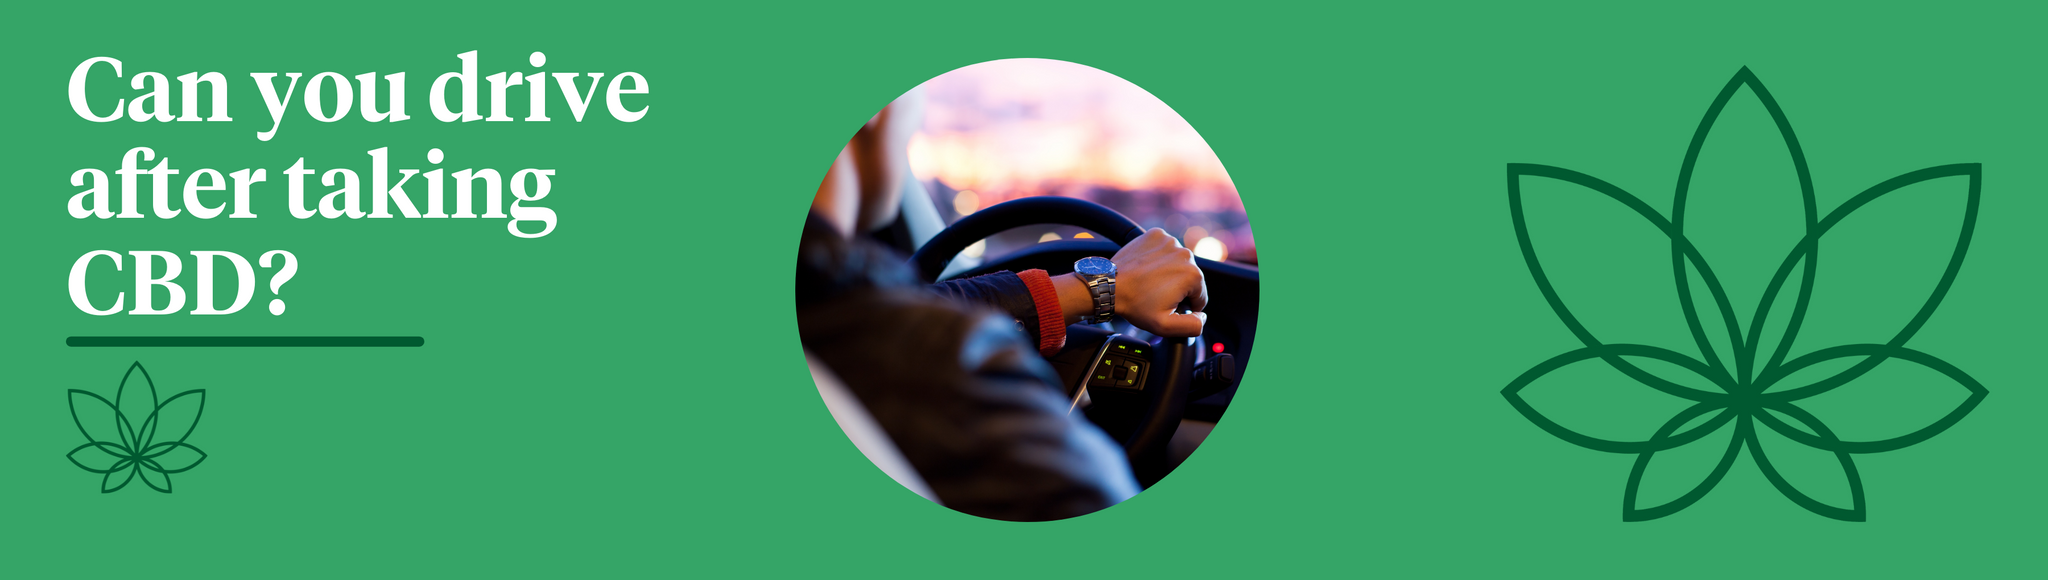 A green background with the Supreme CBD logo to the right of the image with a circular image in the centre with a person driving, holding the steering wheel with one hand.